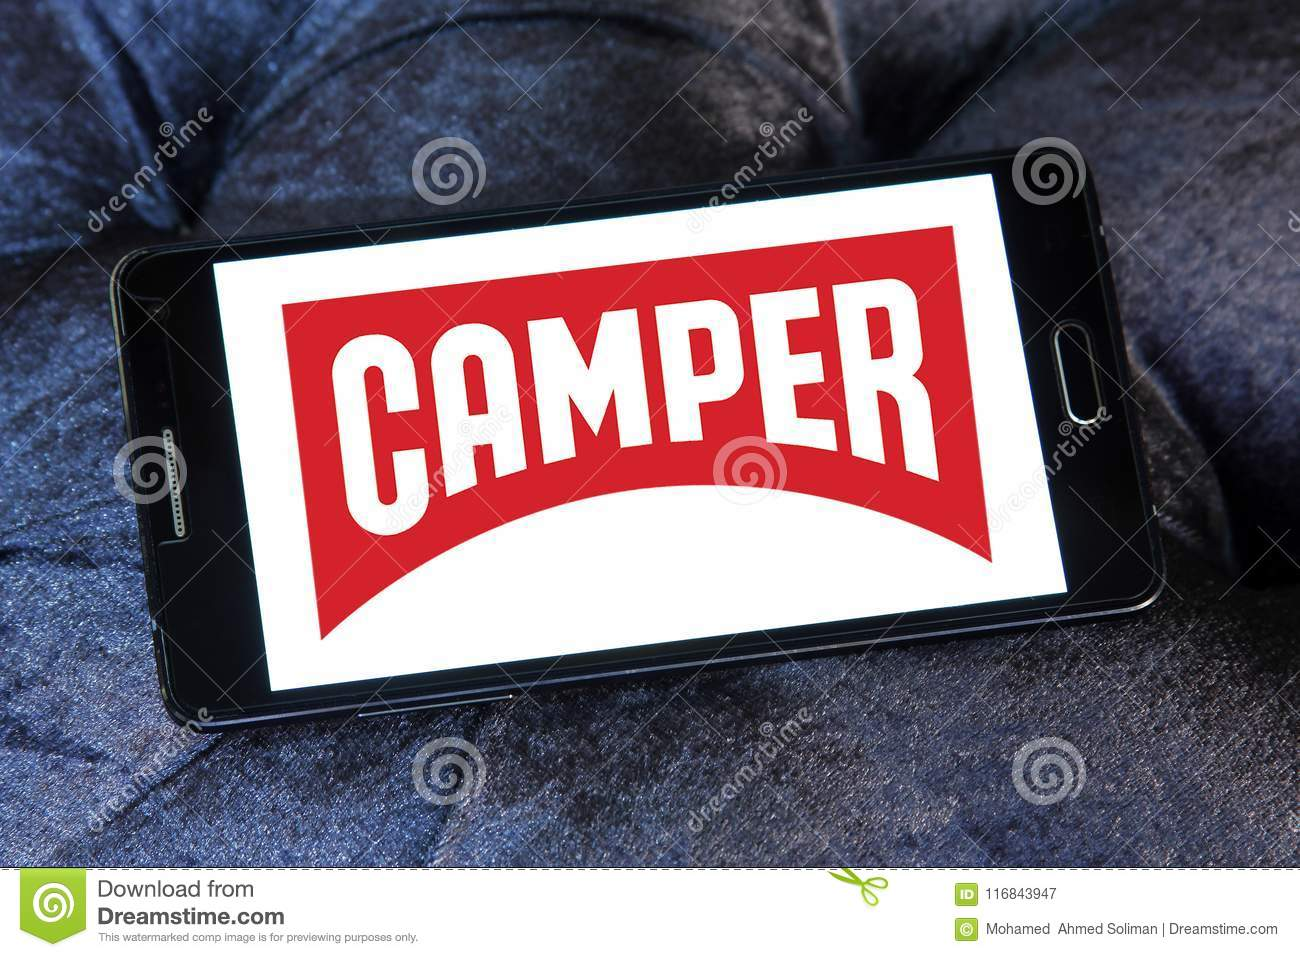 Camper fashion brand logo